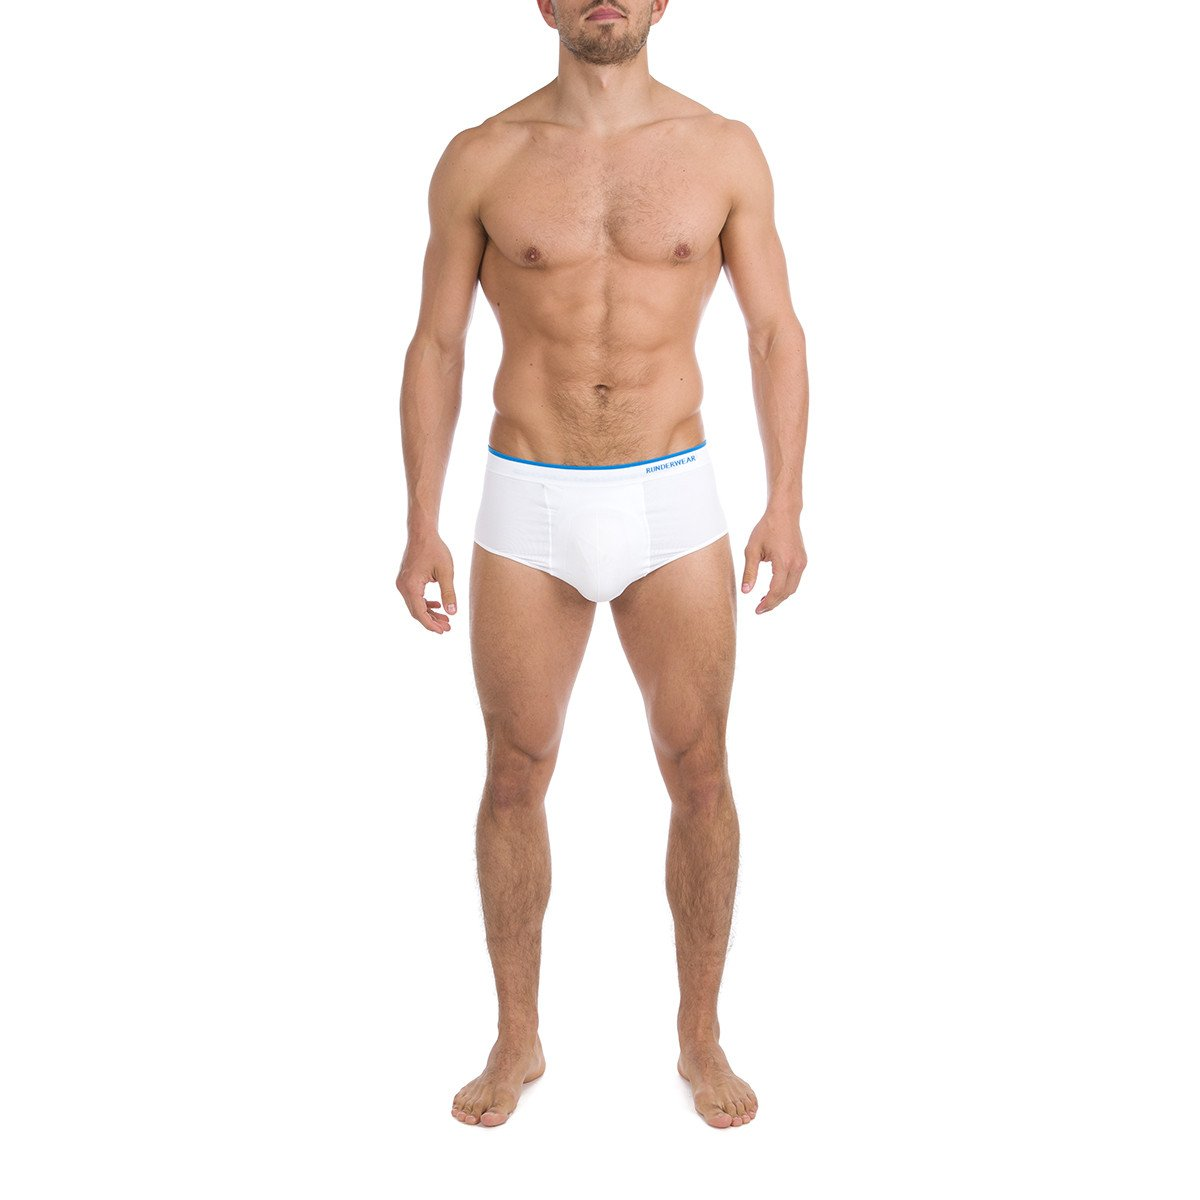 Men's Runderwear Cricket Brief - White